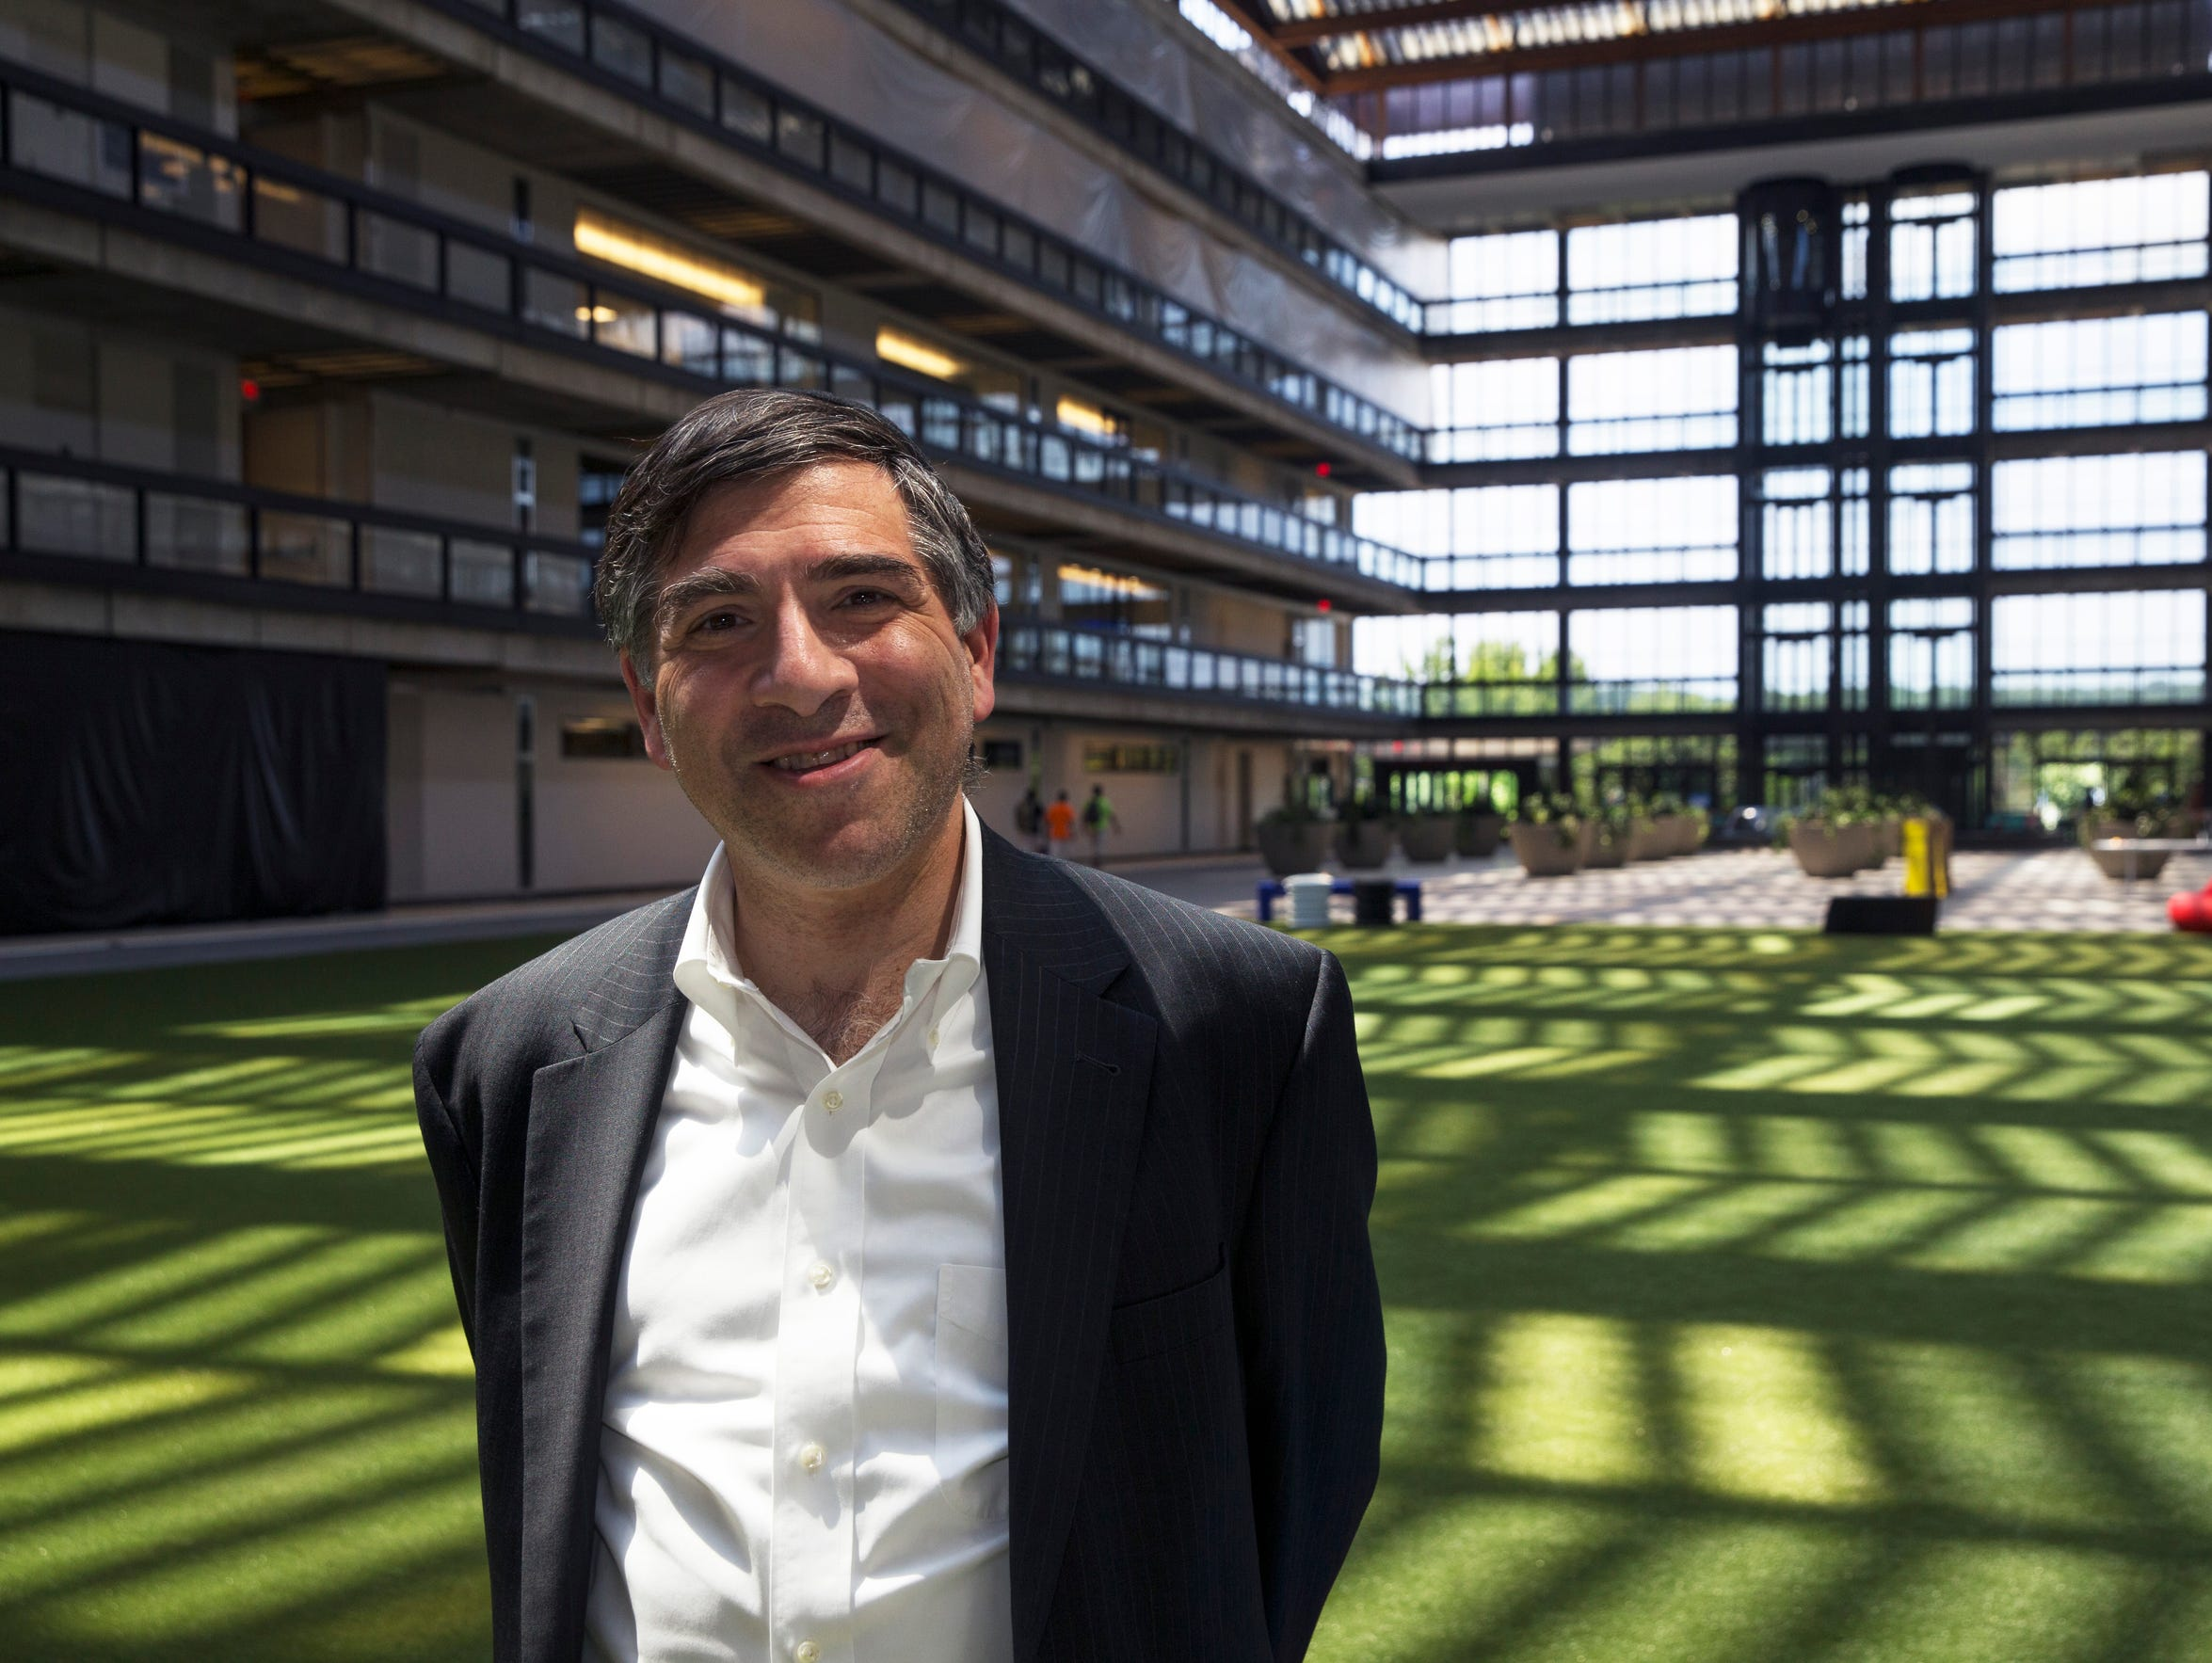 Ralph Zucker is winning accolades for bringing the old Bell Labs building back to life, turning a research center for a giant monopoly into an economic hub for the digital age.